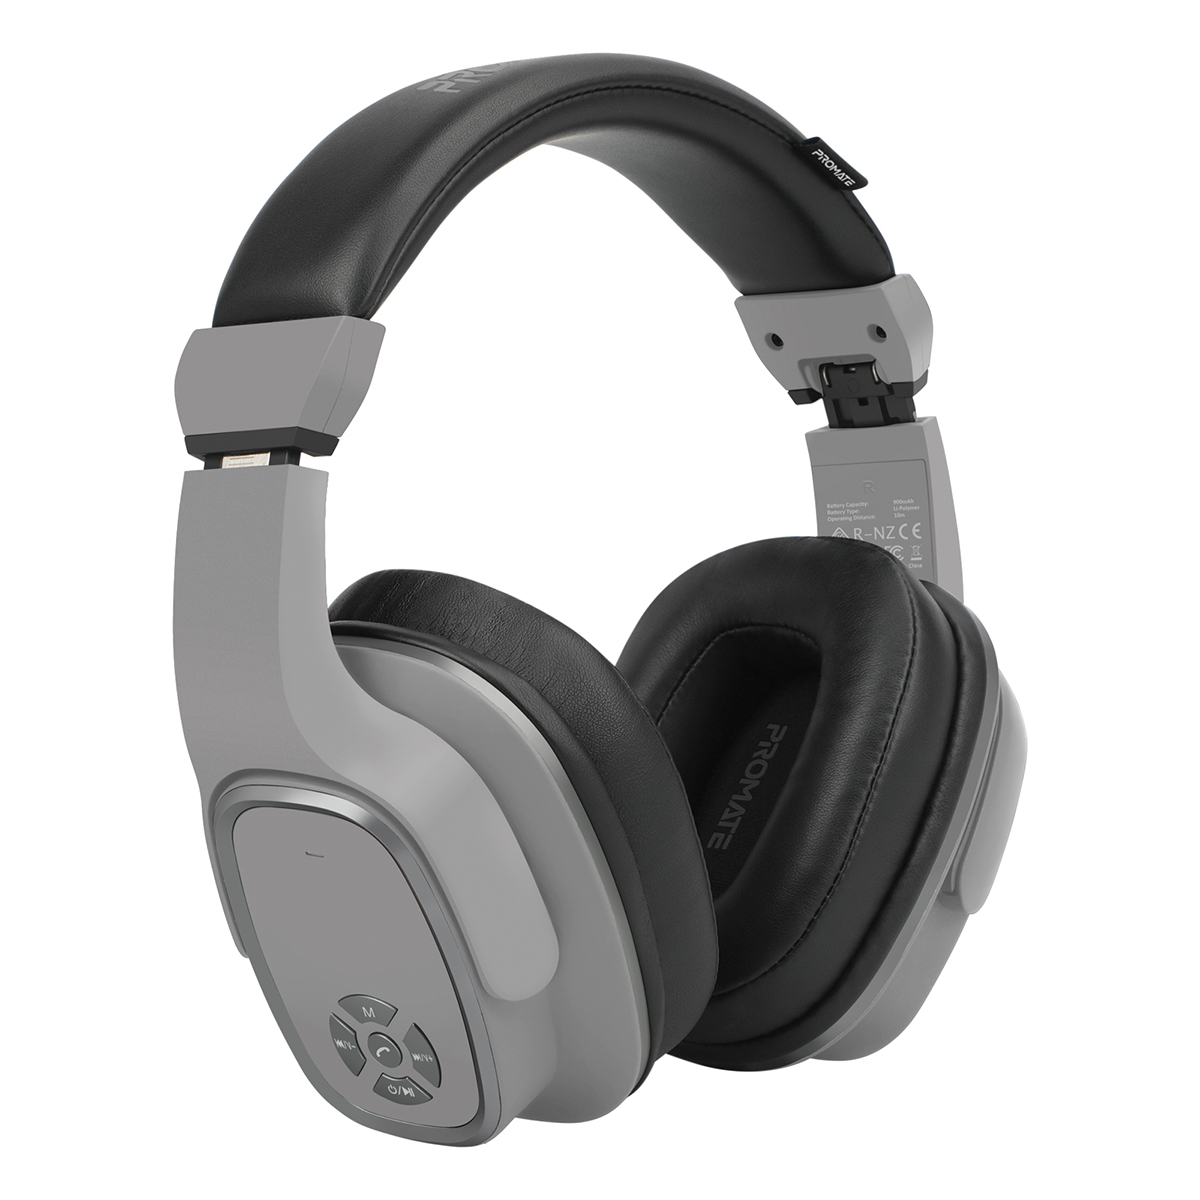 Promate Wireless Headphone with Speaker, 2-in-1 High Definition Bluetooth v5.0 Headphone with Built-in 6W Speaker, Mic, 12H Playtime, MicroSD Card Slot, FM Radio and AUX Port for Smartphones, Tablets, iPod, Corvin Grey